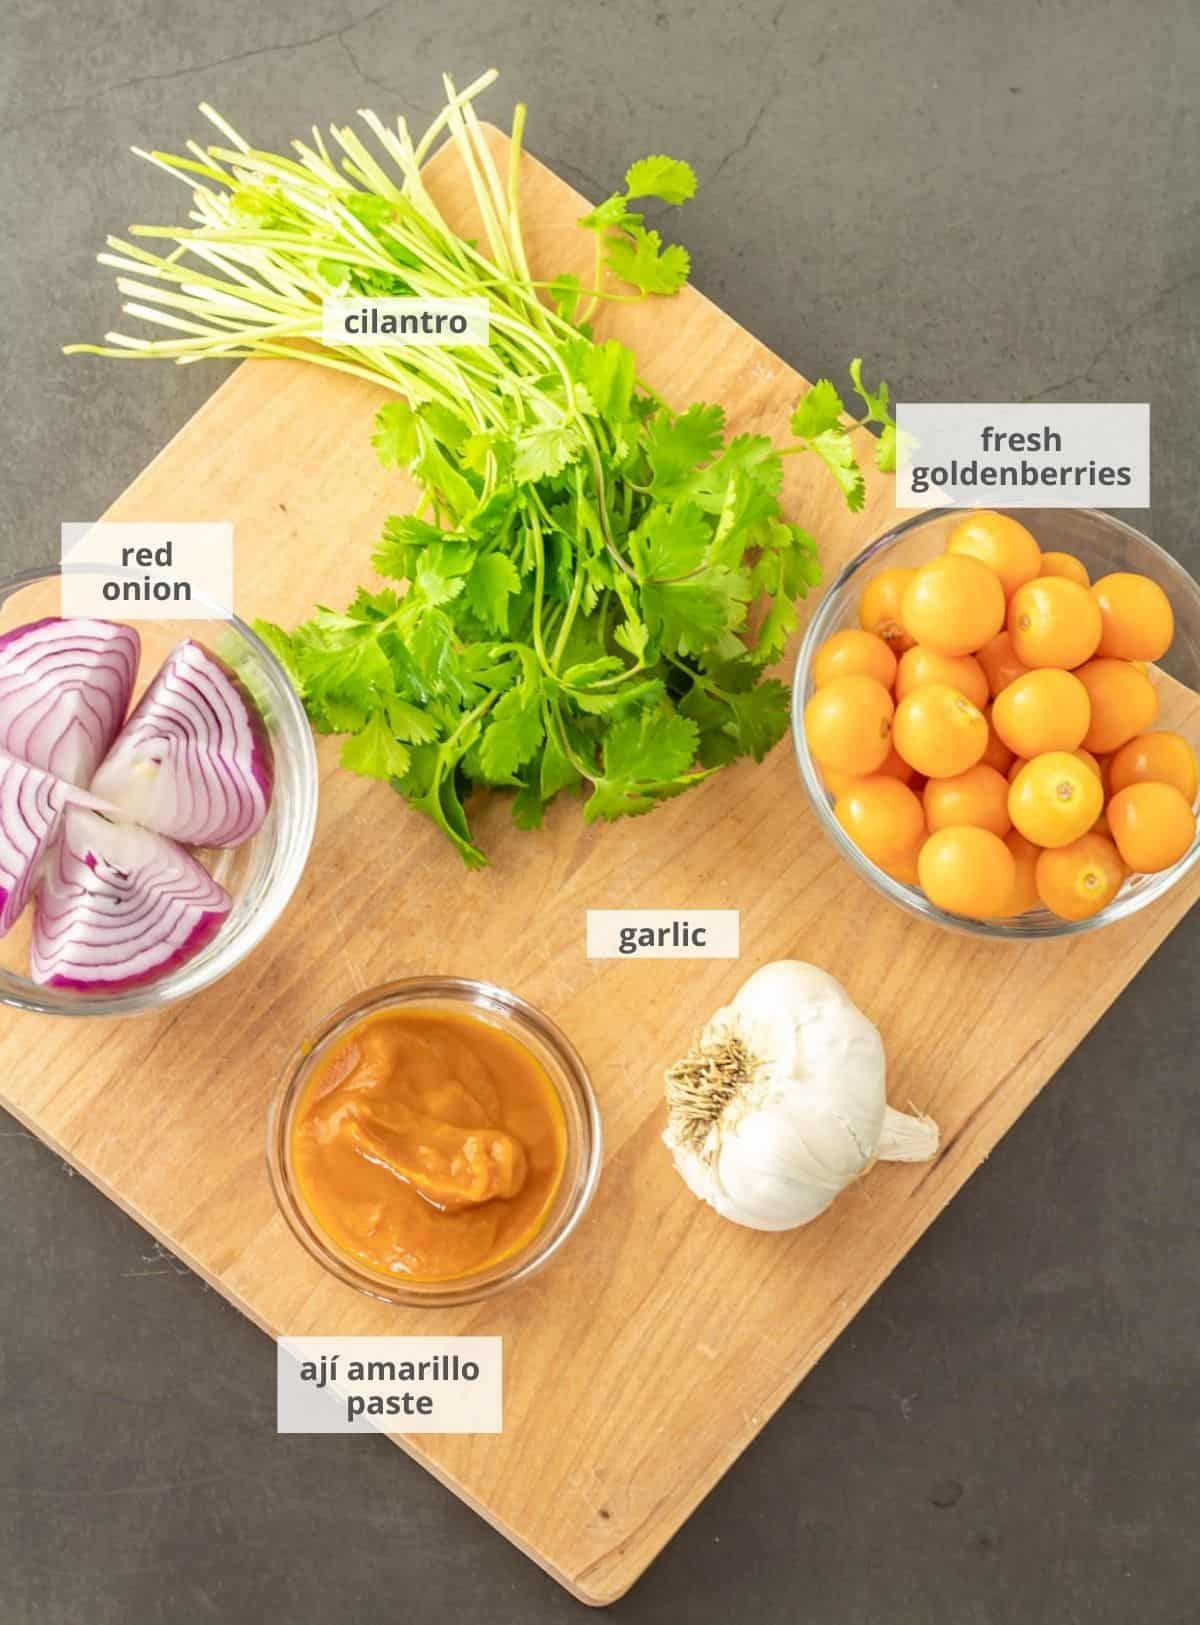 Ingredients for the roasted goldenberry sauce: Goldenberries, garlic, ají amarillo sauce, red onion, and cilantro on a wood cutting board.